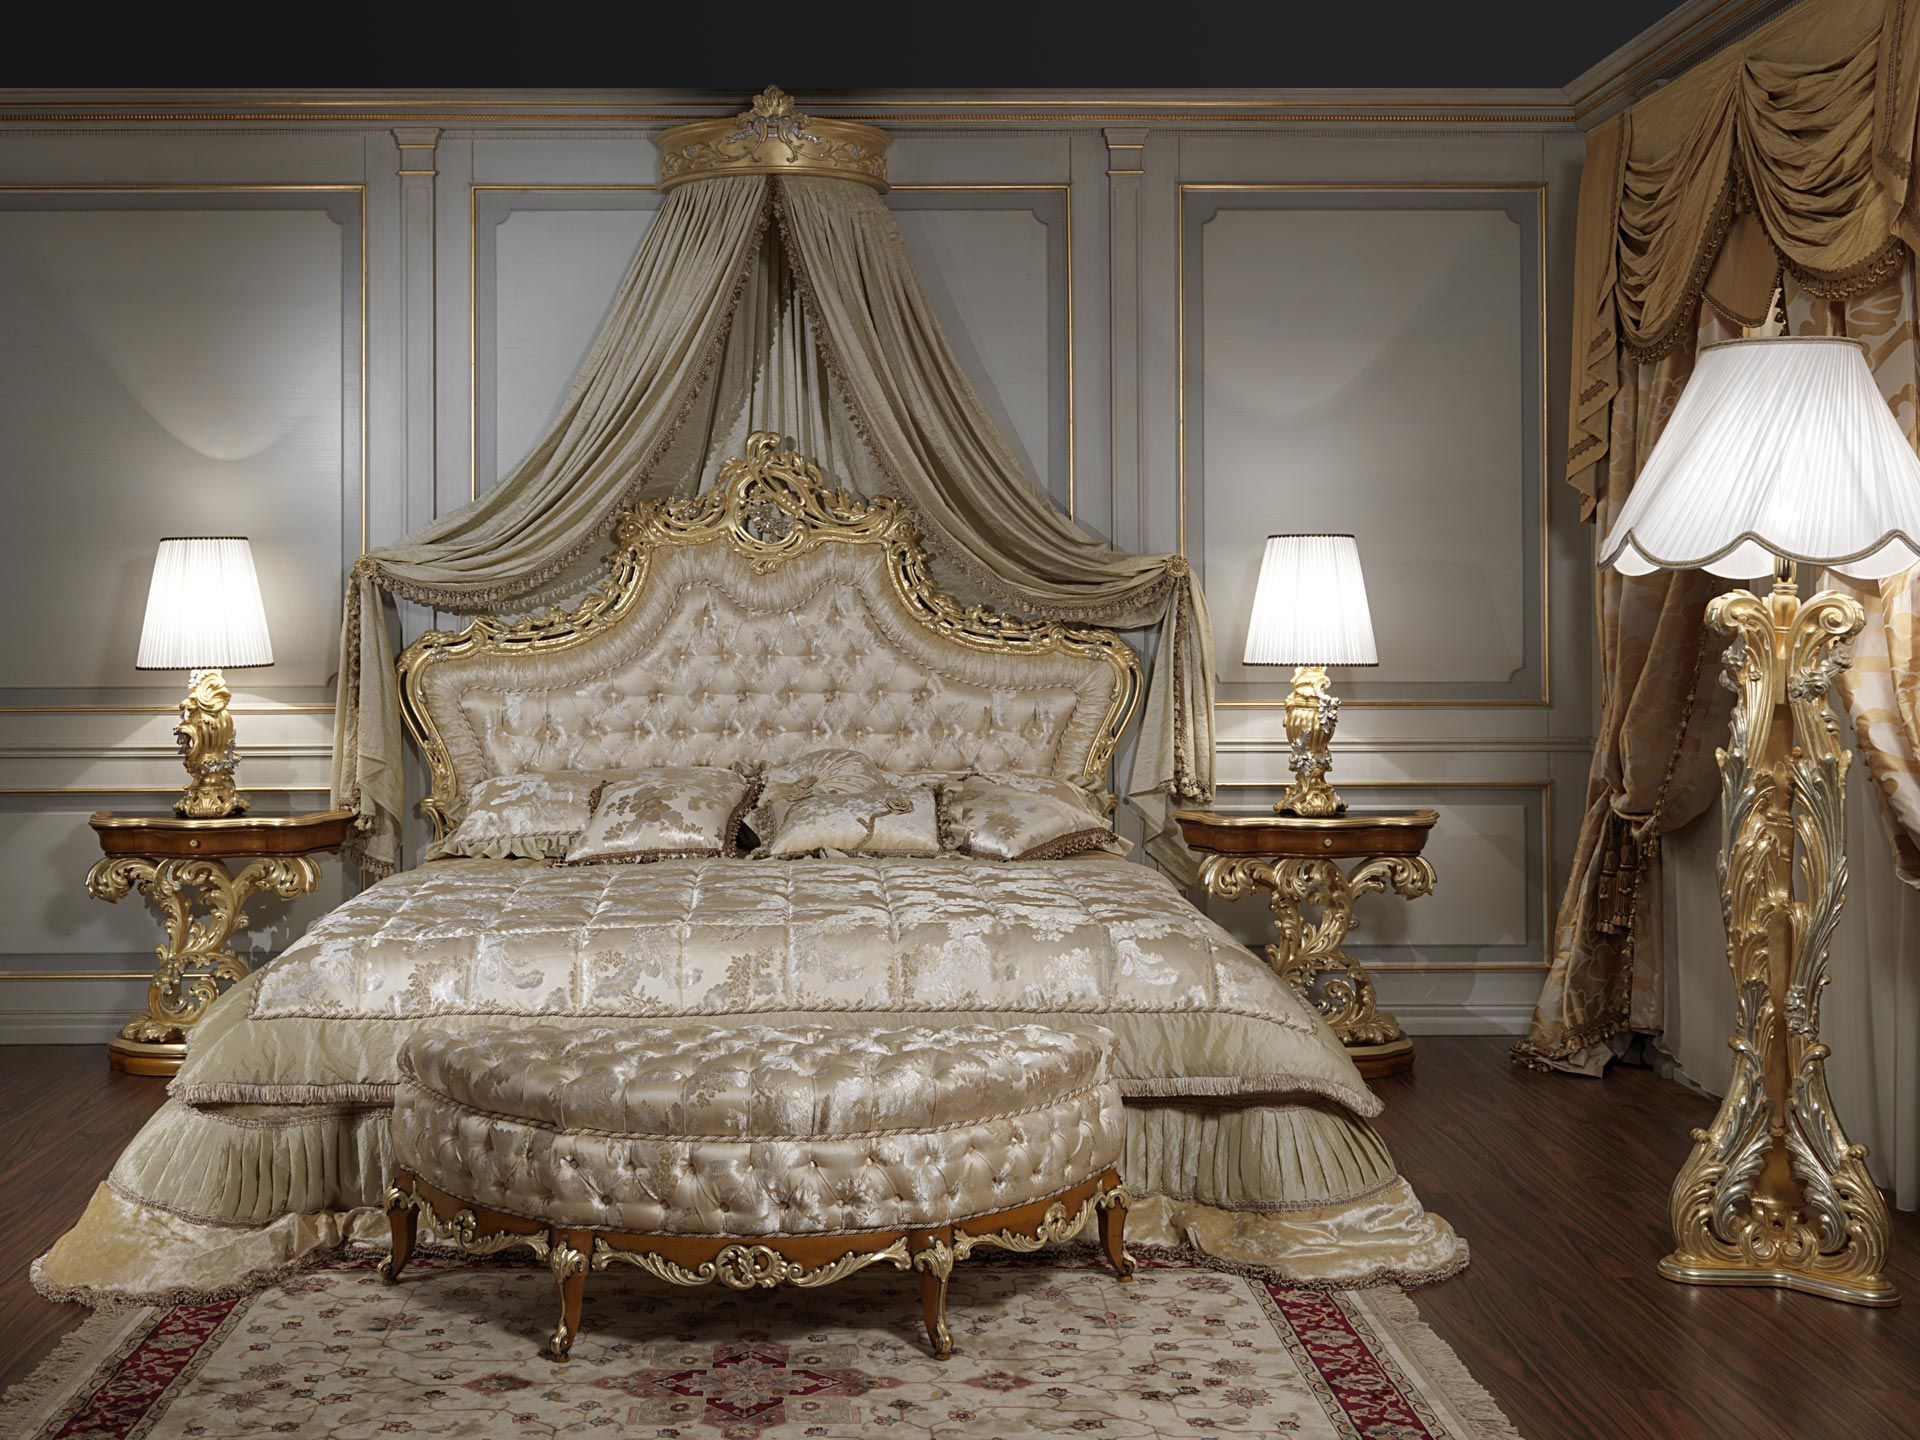 Baroque bed for the roman baroque style of the seventeenth